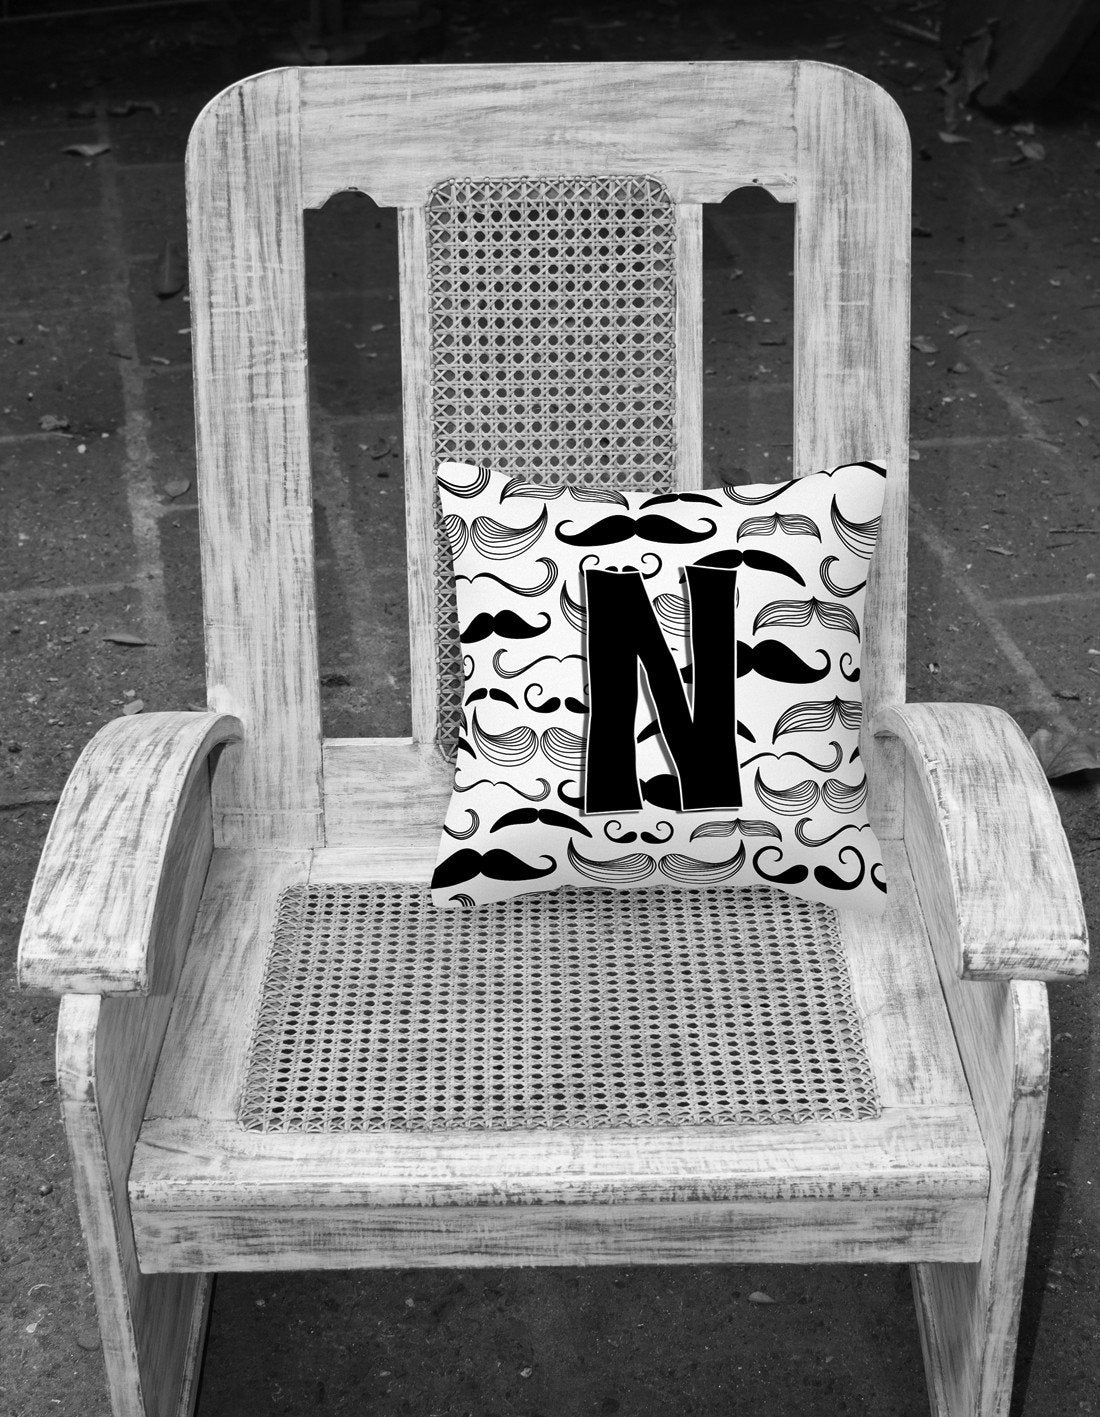 Letter N Moustache Initial Canvas Fabric Decorative Pillow CJ2009-NPW1414 by Caroline's Treasures